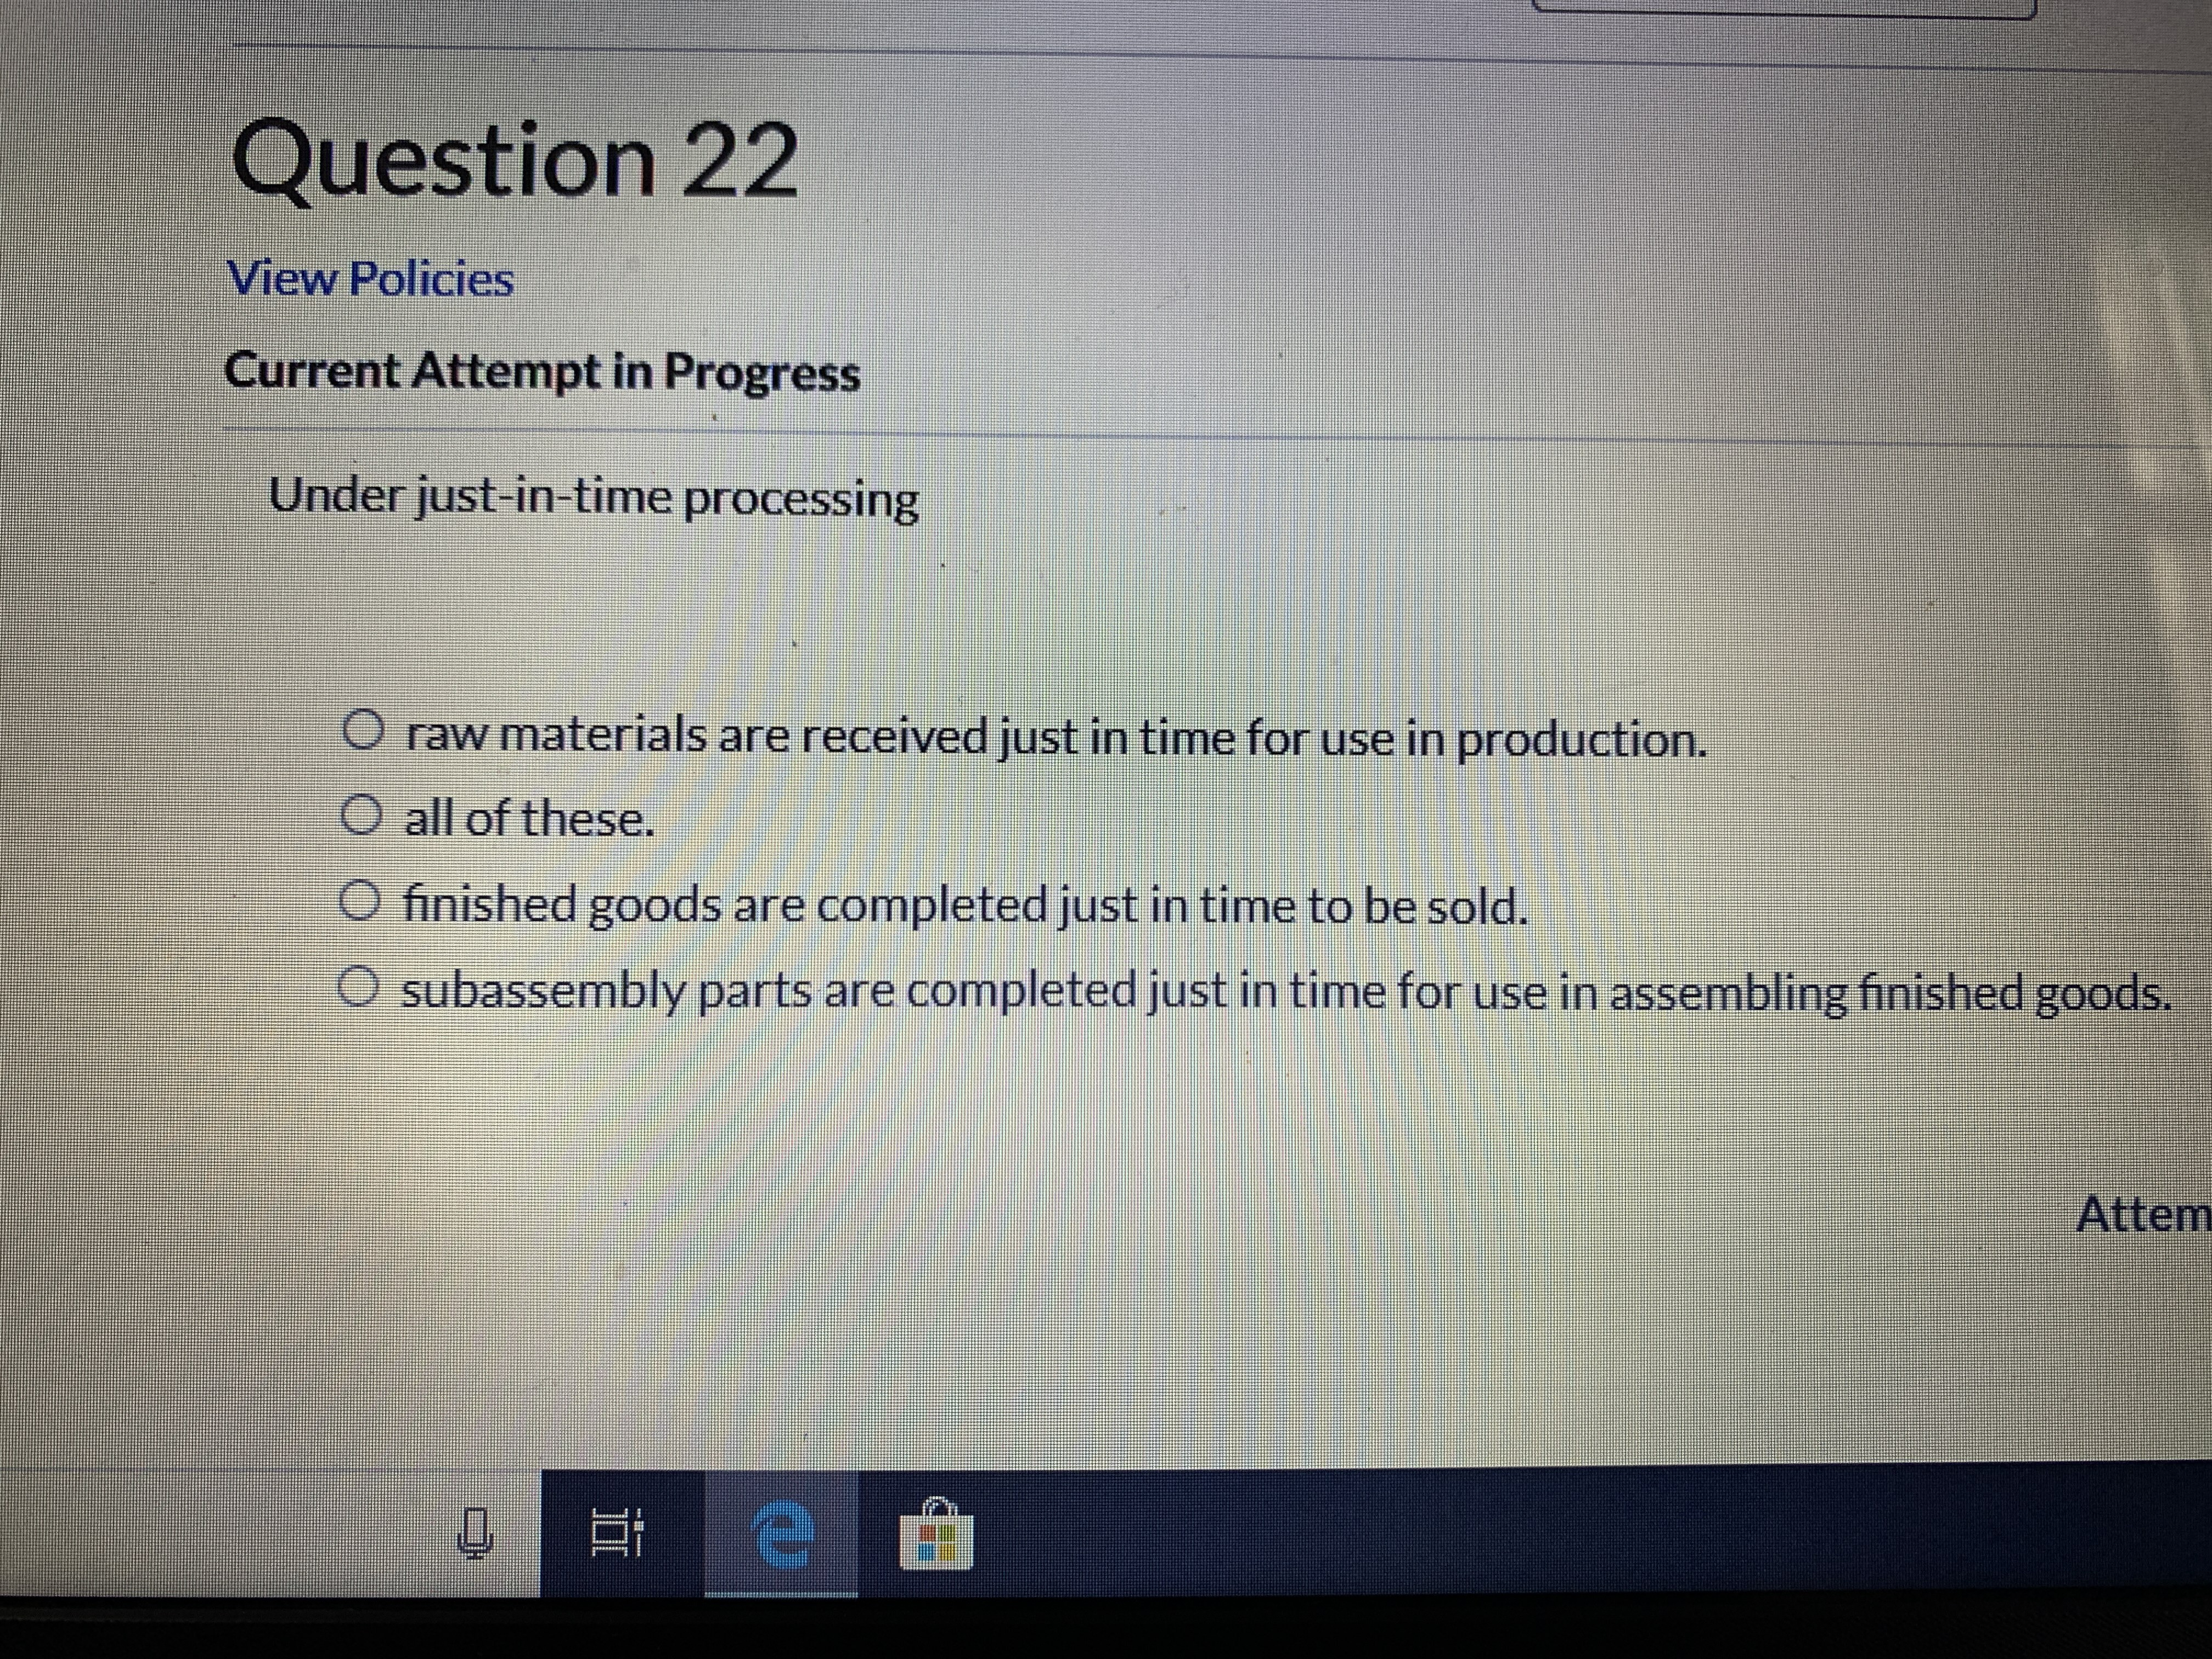 Question 22 View Policies Current Attempt in Progress Under just-in-time processing O raw materials are received just in time for use in production. O all of these. O finished goods are completed just in time to be sold. Osubassembly parts are completed just in time for use in assembling finished goods. Attem e